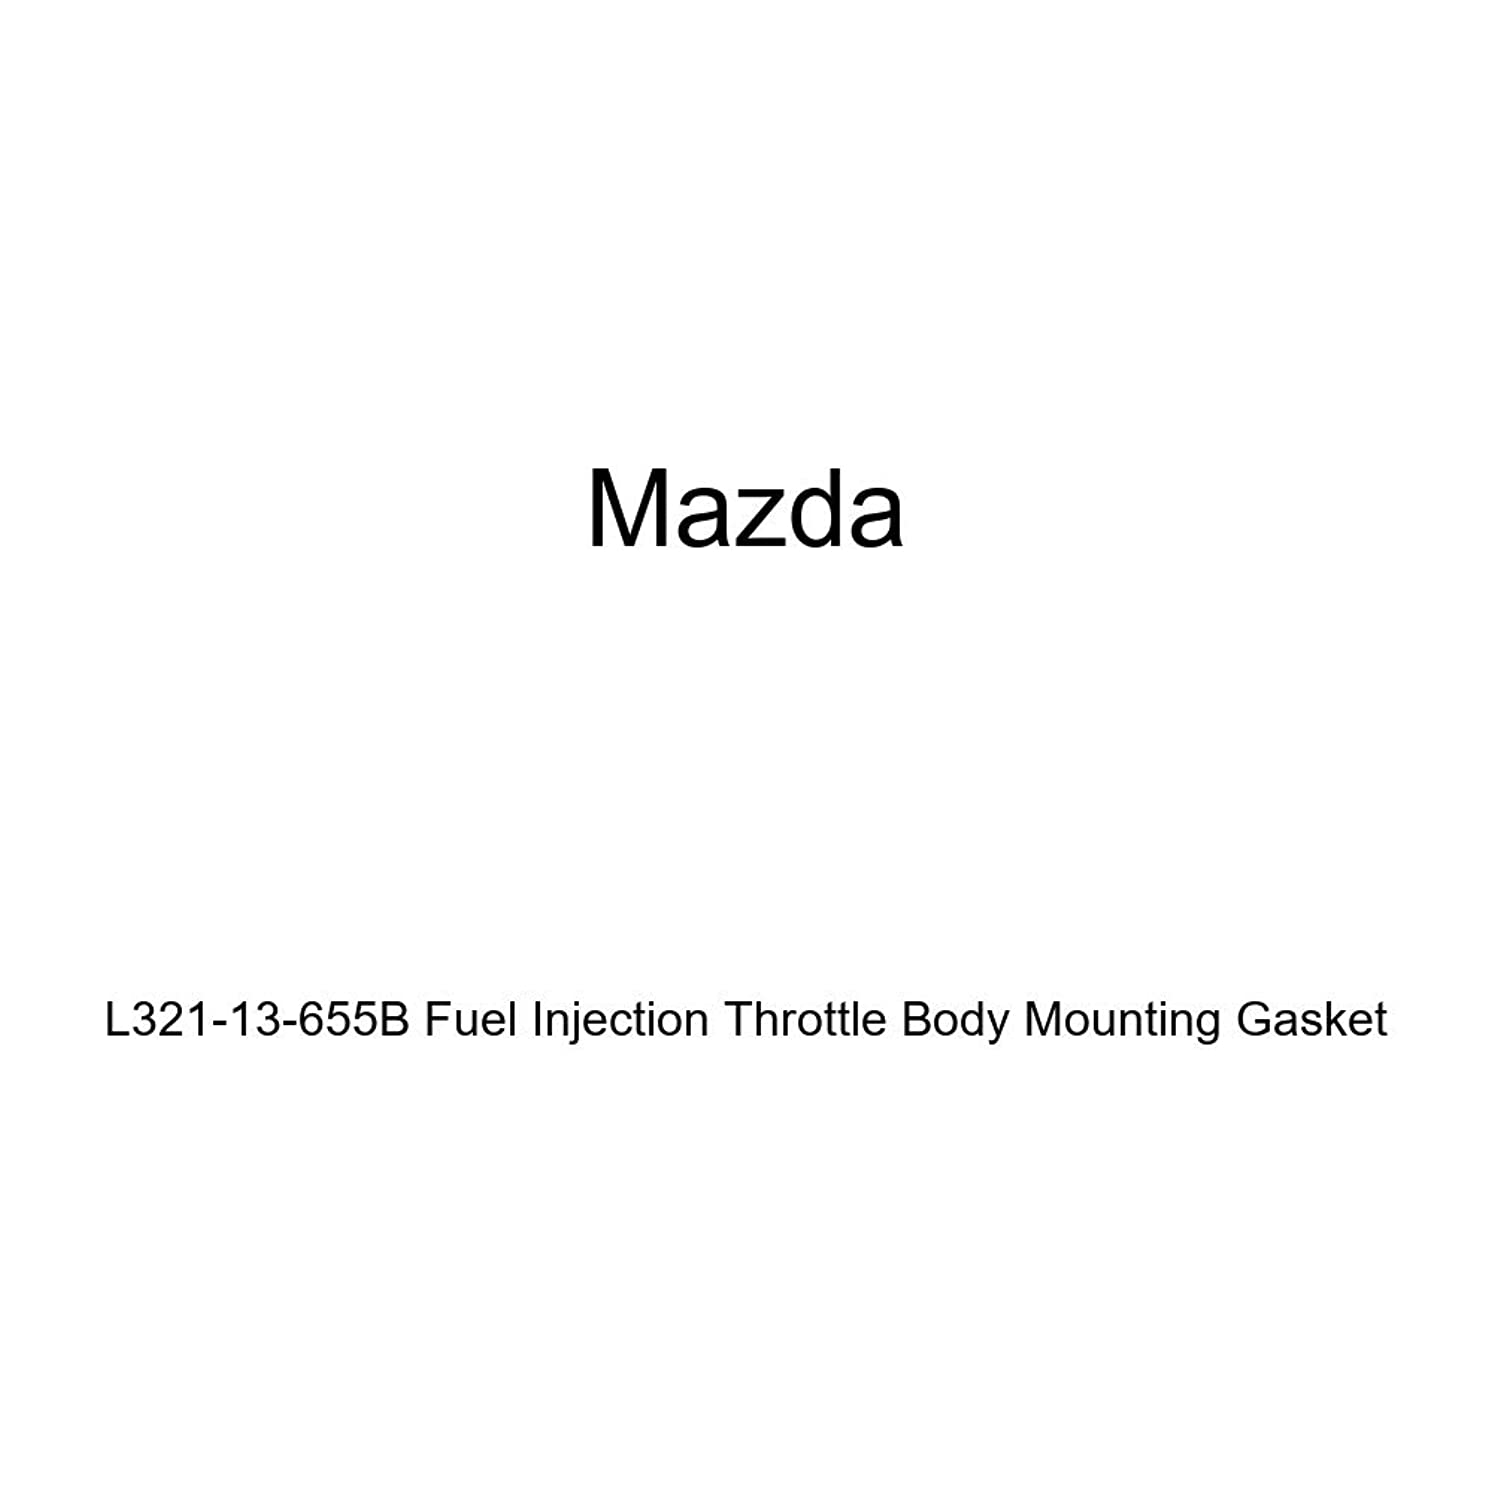 Mazda L321-13-655B Fuel Injection Throttle Body Mounting Gasket